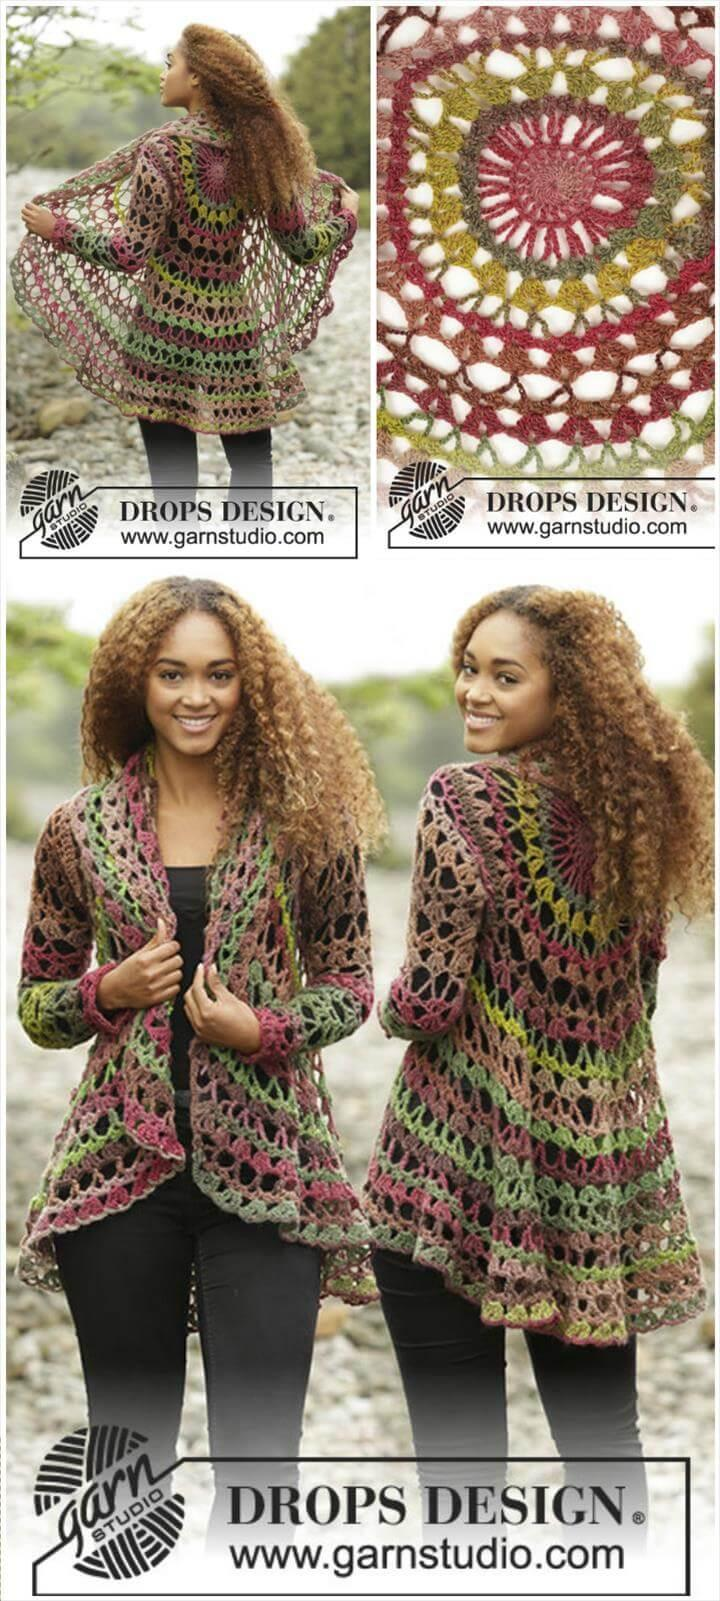 12 Free Crochet Patterns for Circular Vest Jacket – 101 Crochet Patterns